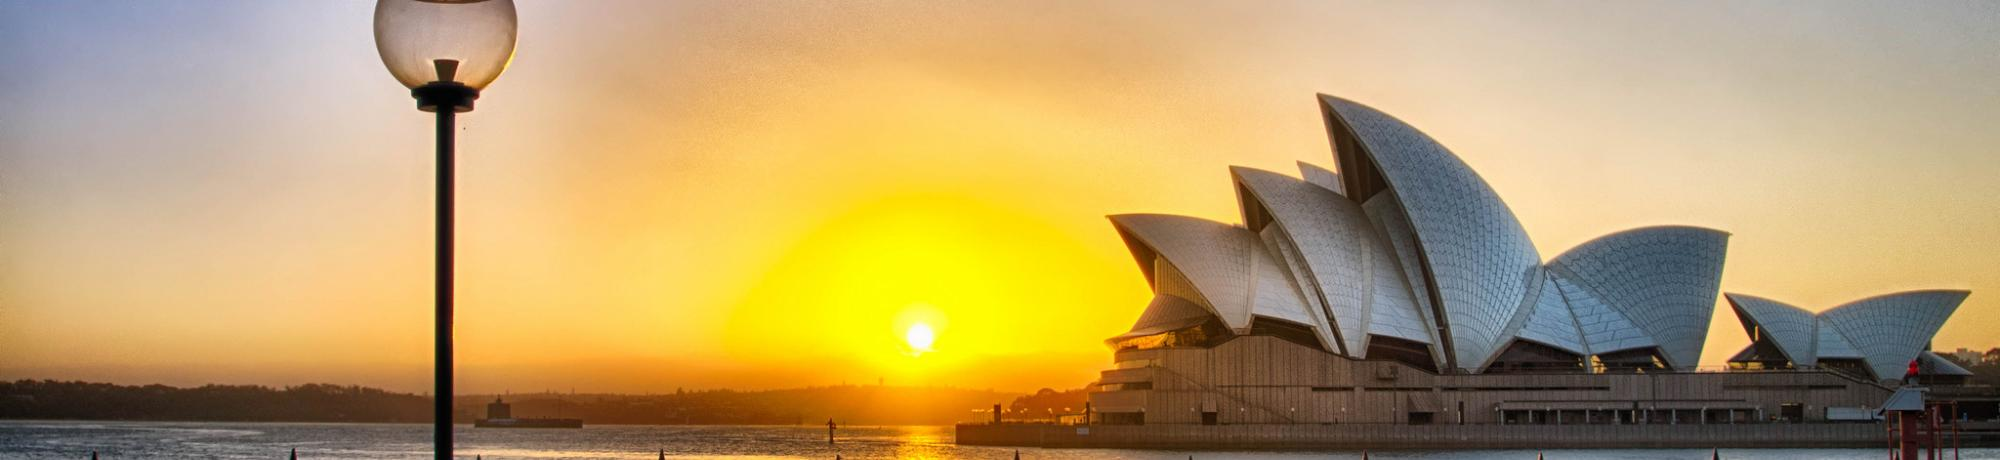 UC Davis Study Abroad, Quarter Abroad Australia, Internships & Writing in Sydney Program, Header Image, Overview Page